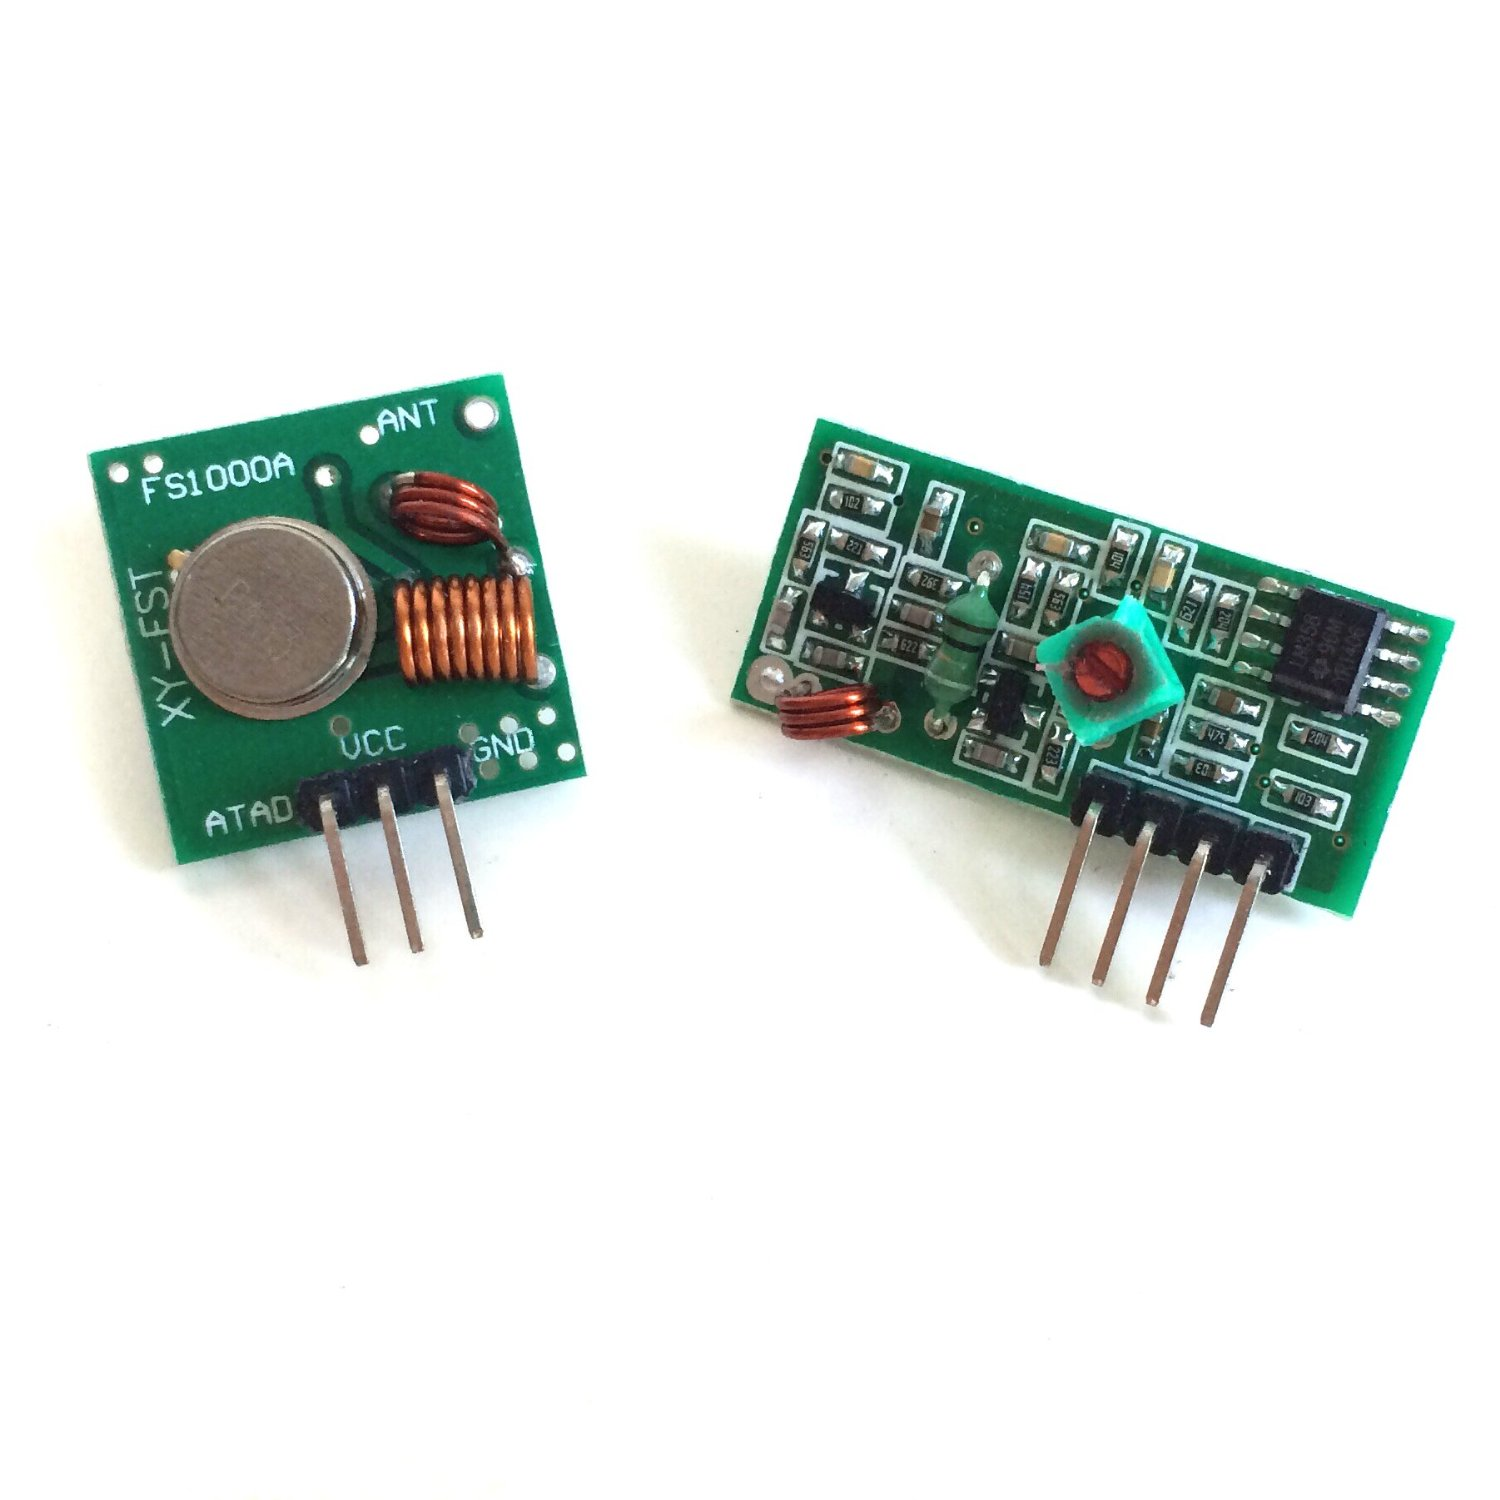 Let Raspberry Pi S Communicate With Each Other Per 433mhz